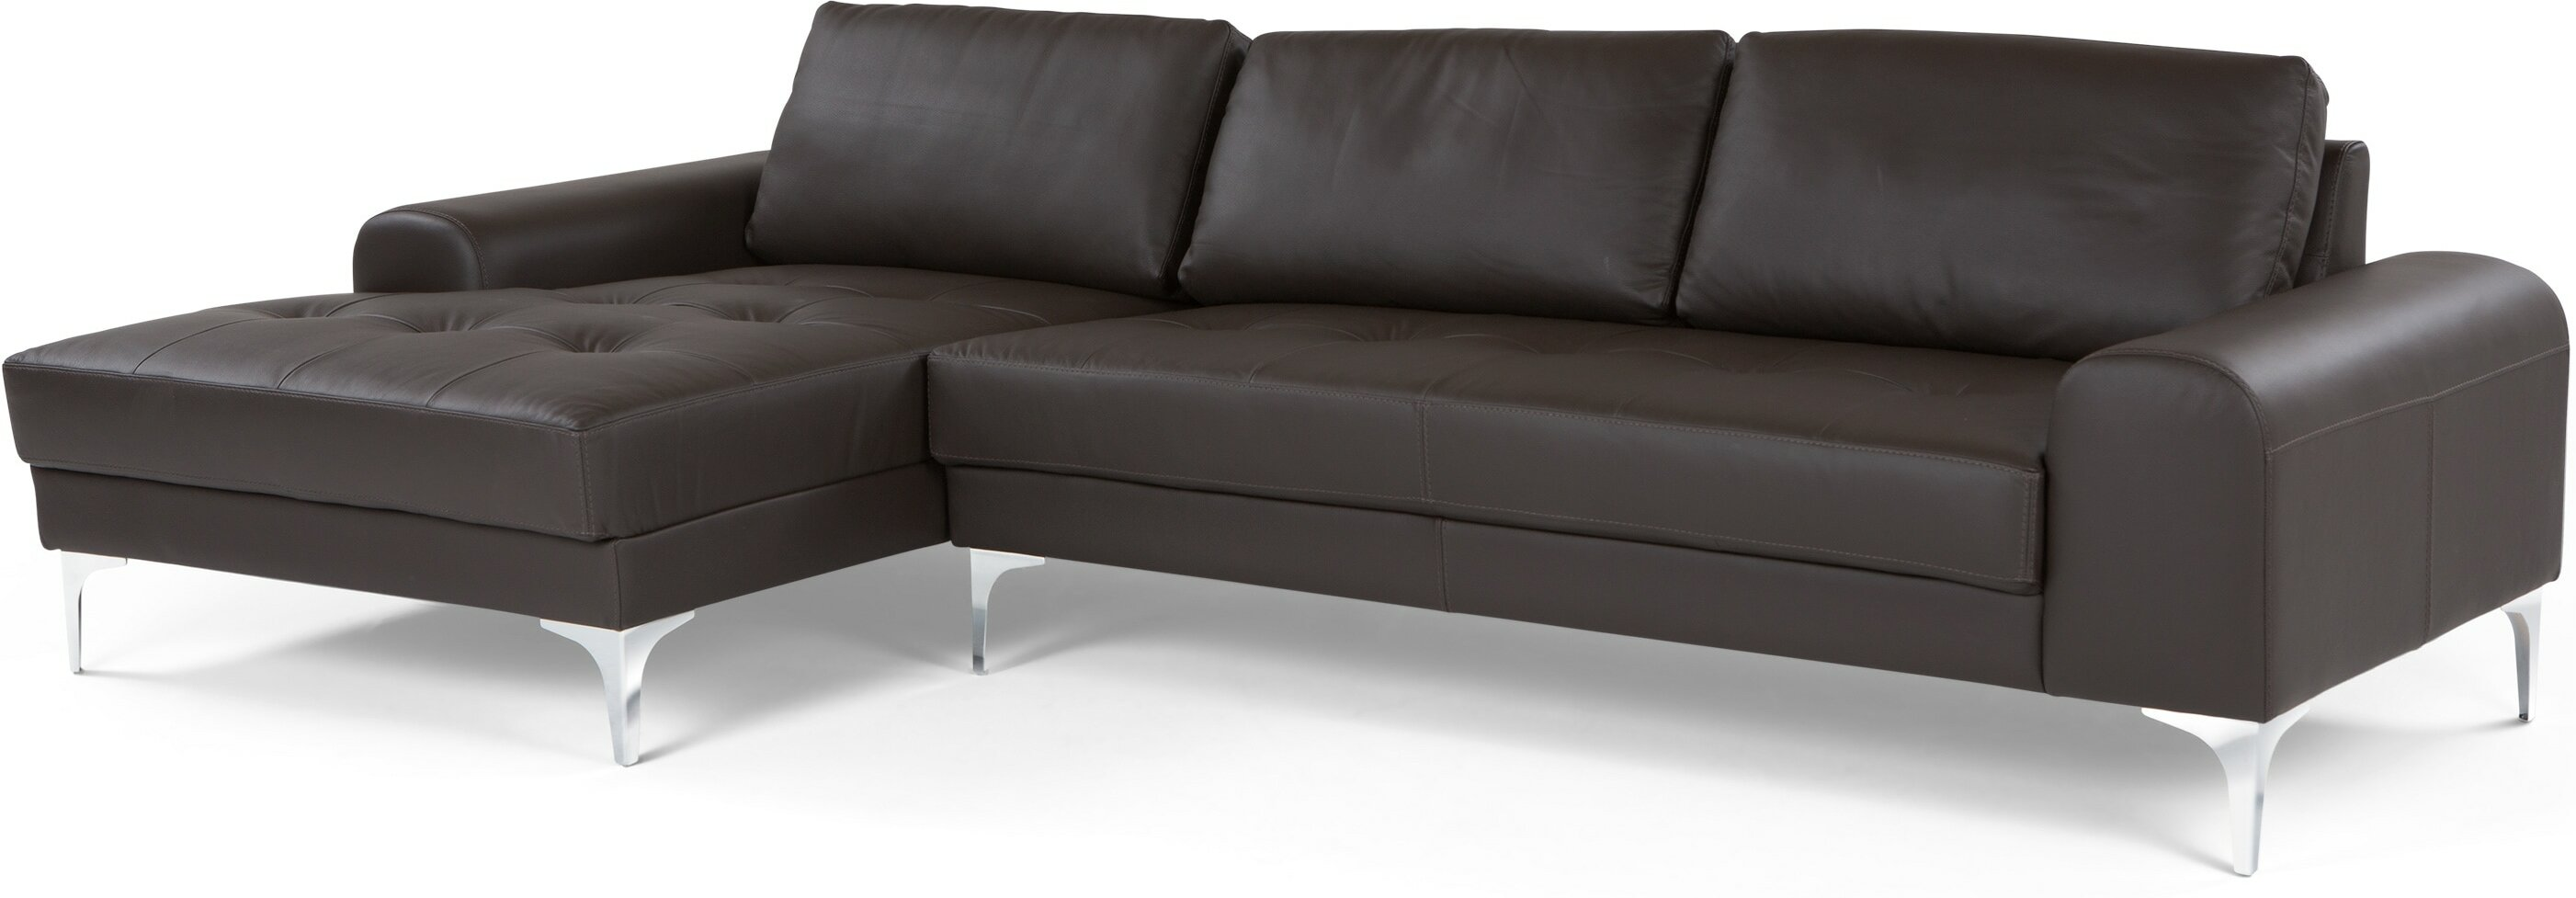 Buy cheap corner unit compare sofas prices for best uk deals - Buy Cheap Deep Corner Sofa Compare Sofas Prices For Best